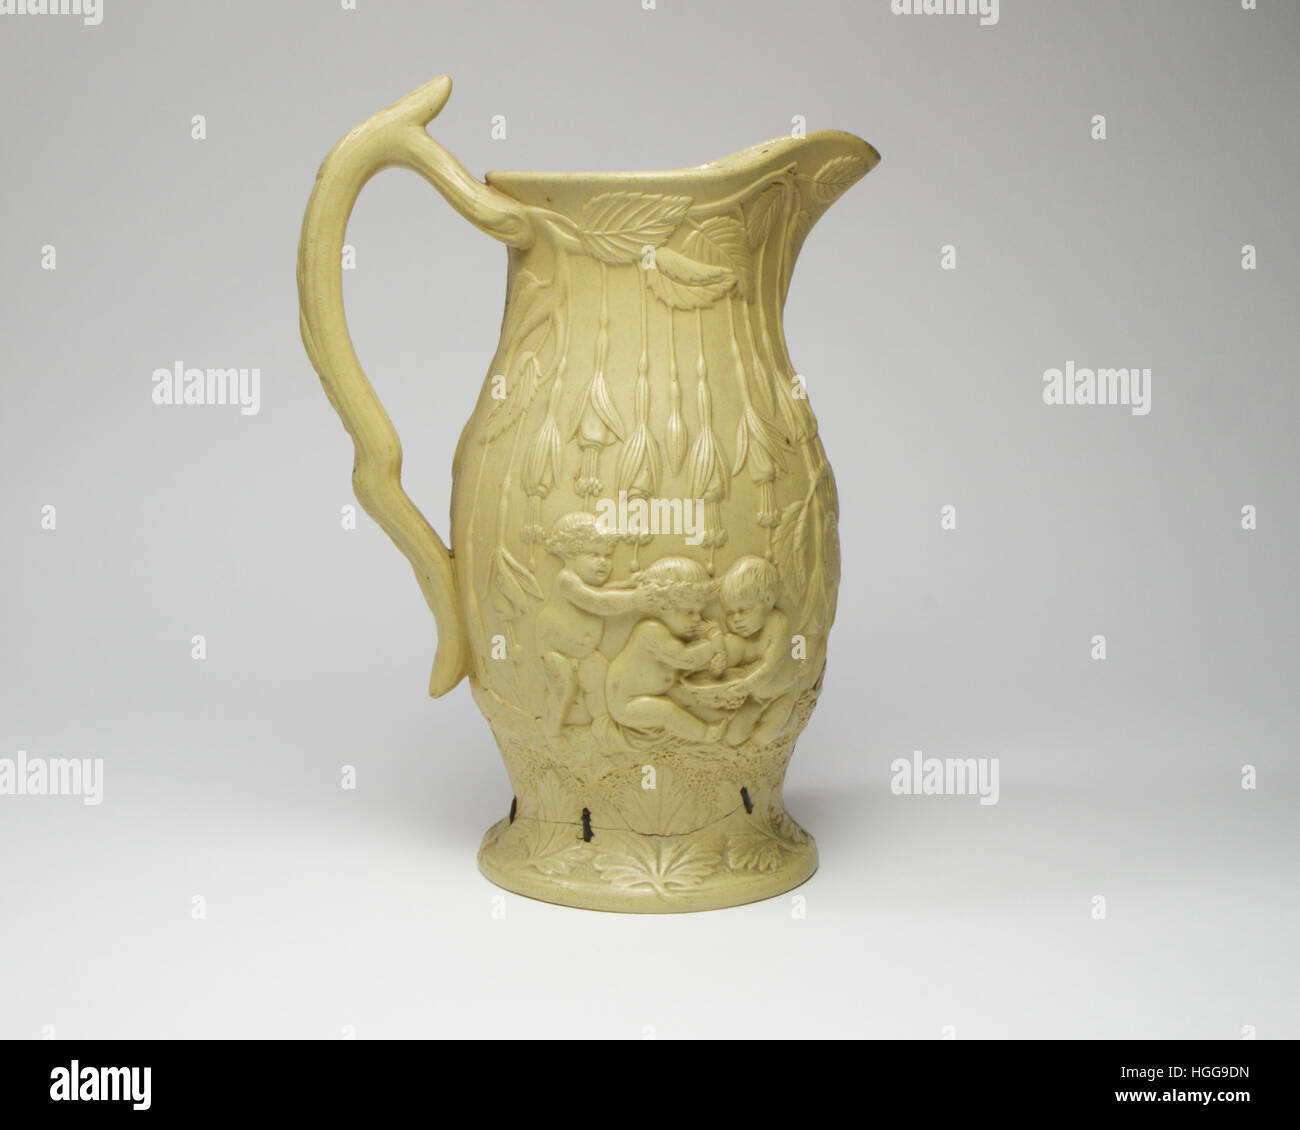 antique English stoneware ewer. Decorated in high relief with Bacchus putti, flowers and leaves. The ewer measures Stock Photo